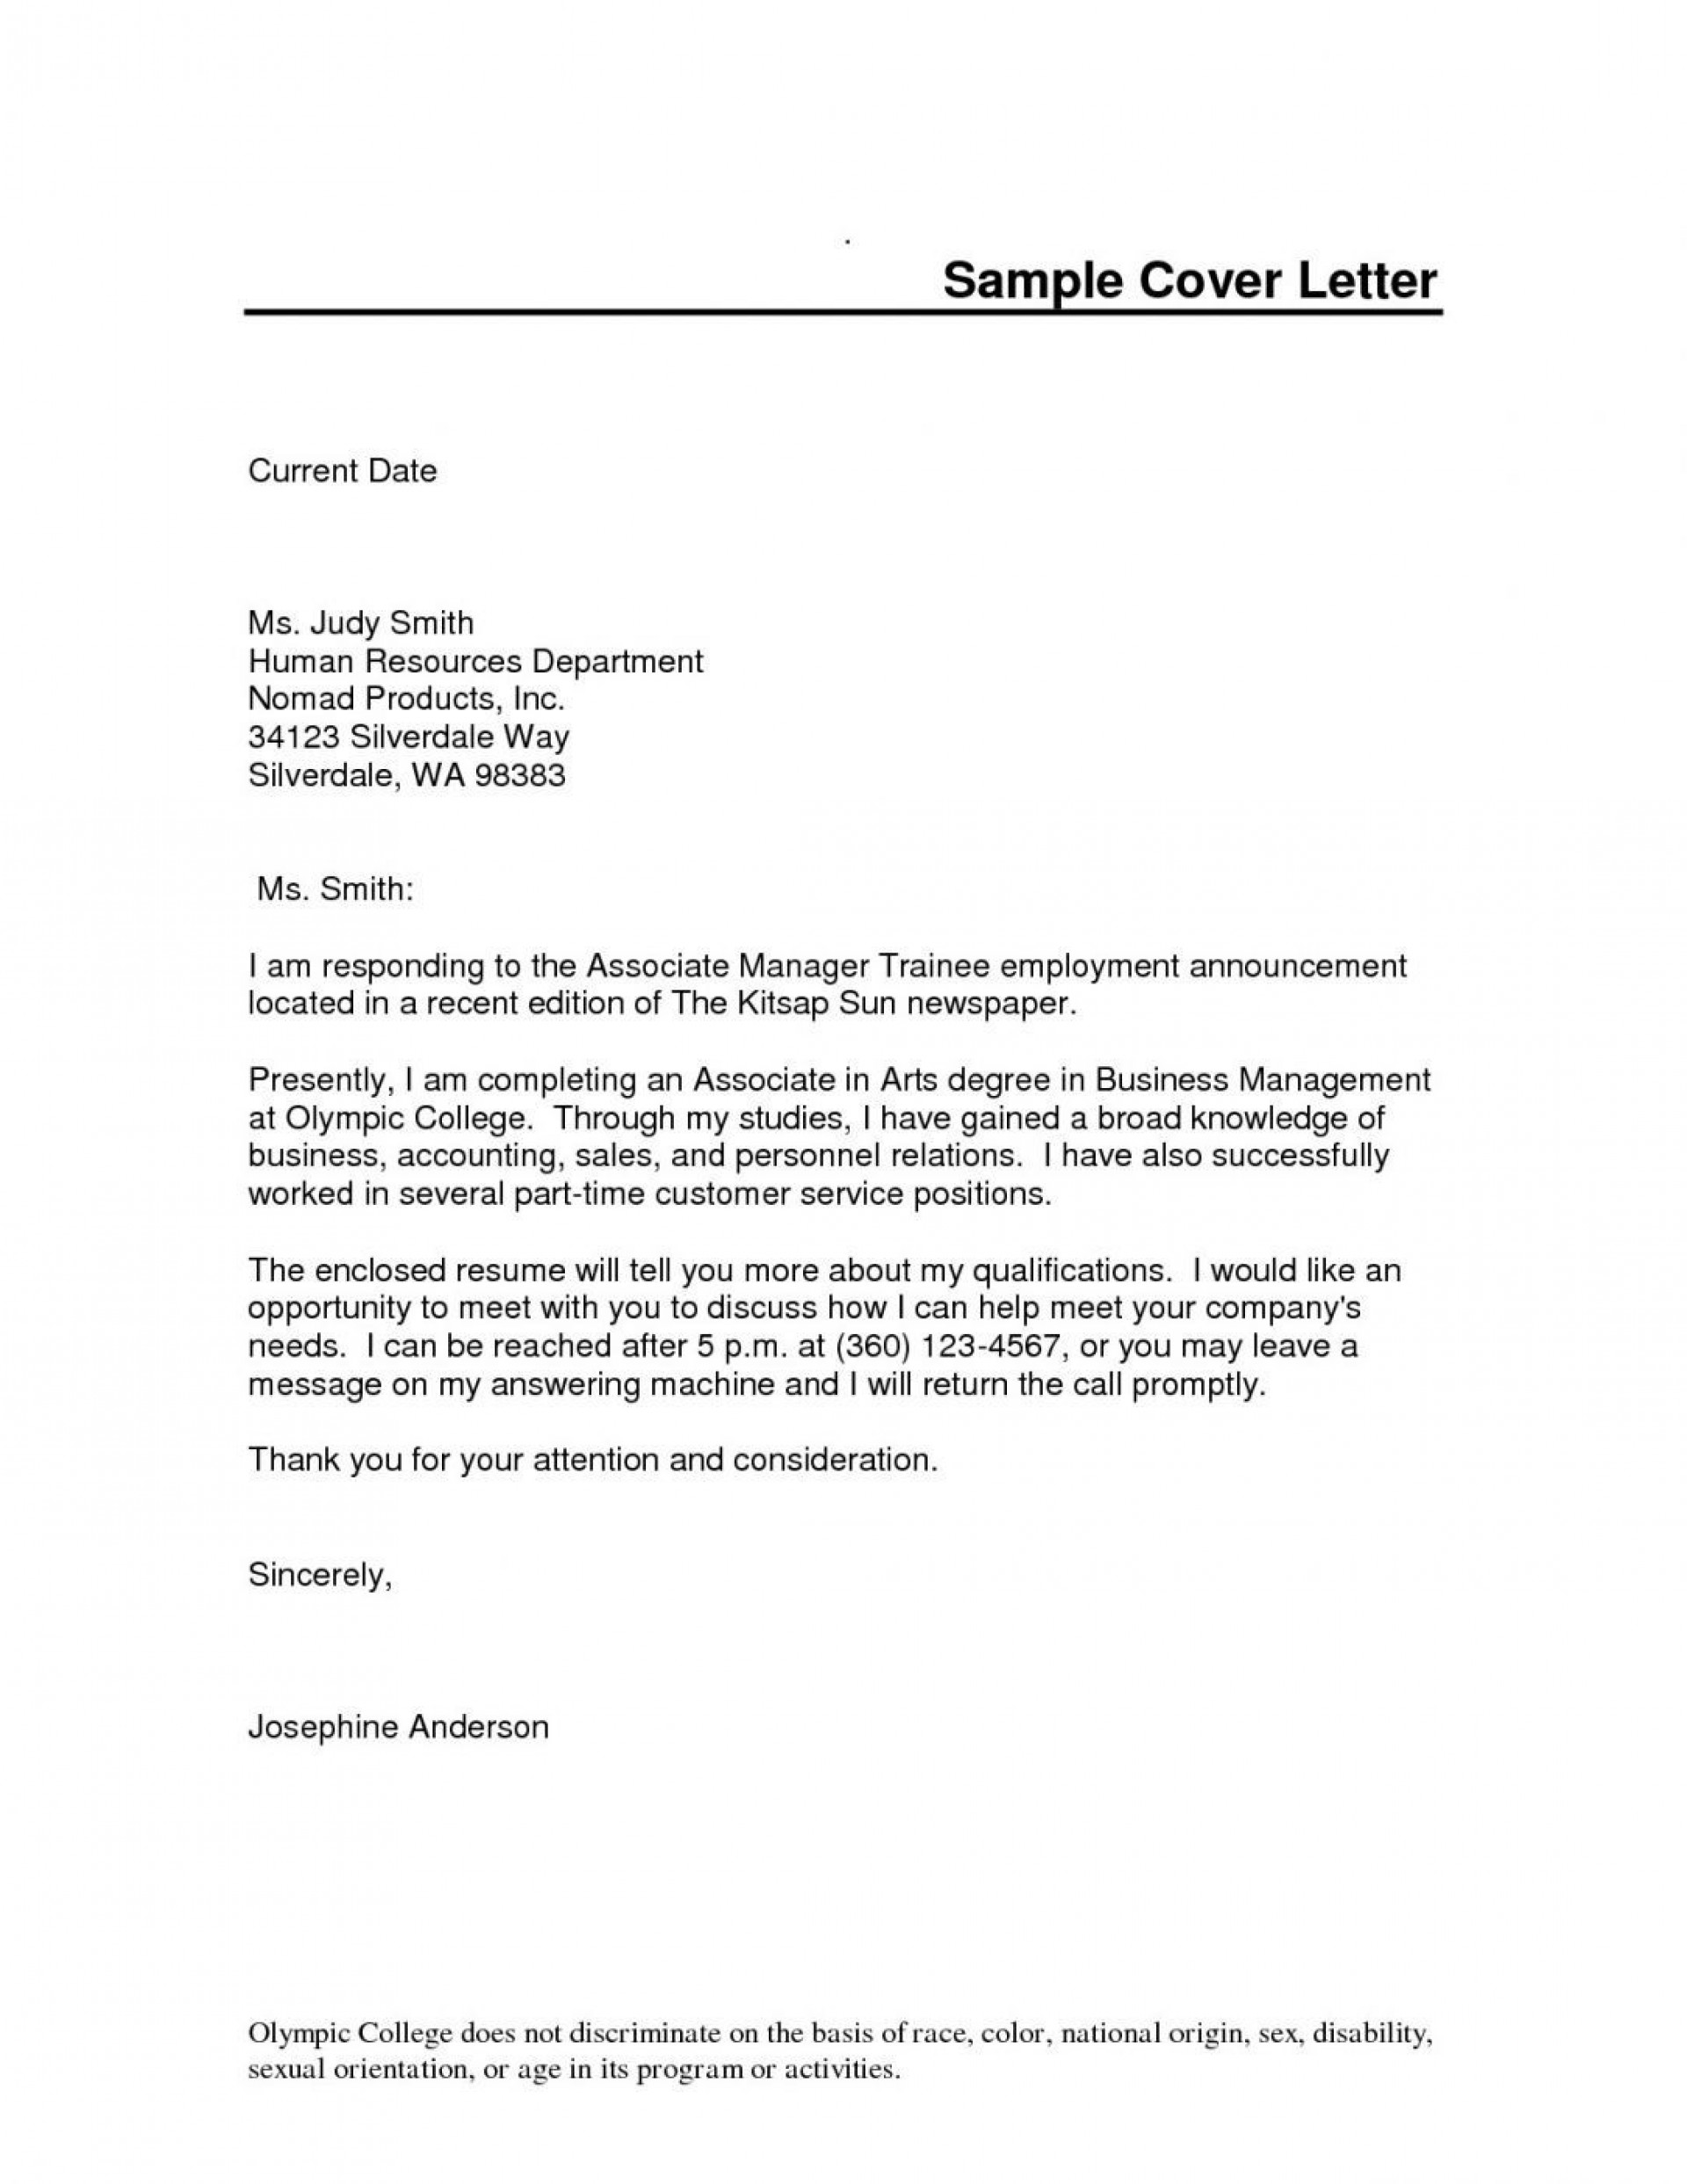 Word Cover Letter Template ~ Addictionary